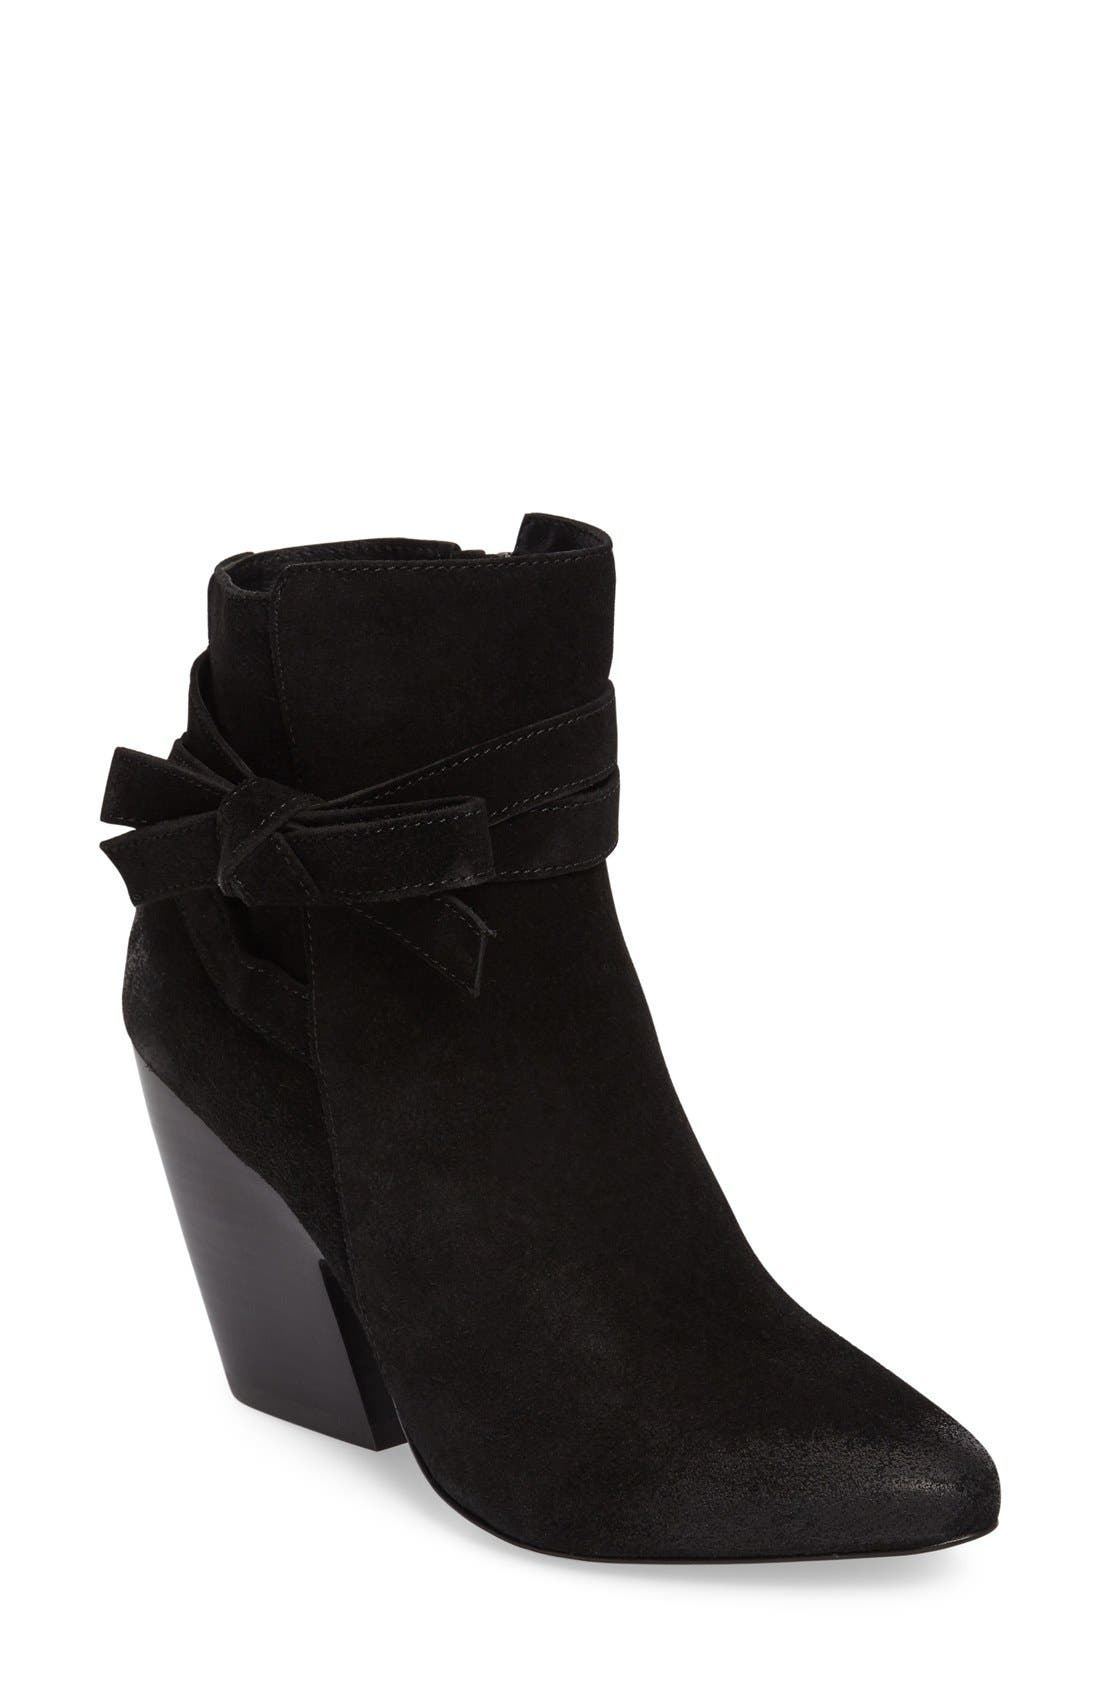 Jax Block Heel Bootie,                         Main,                         color, 001